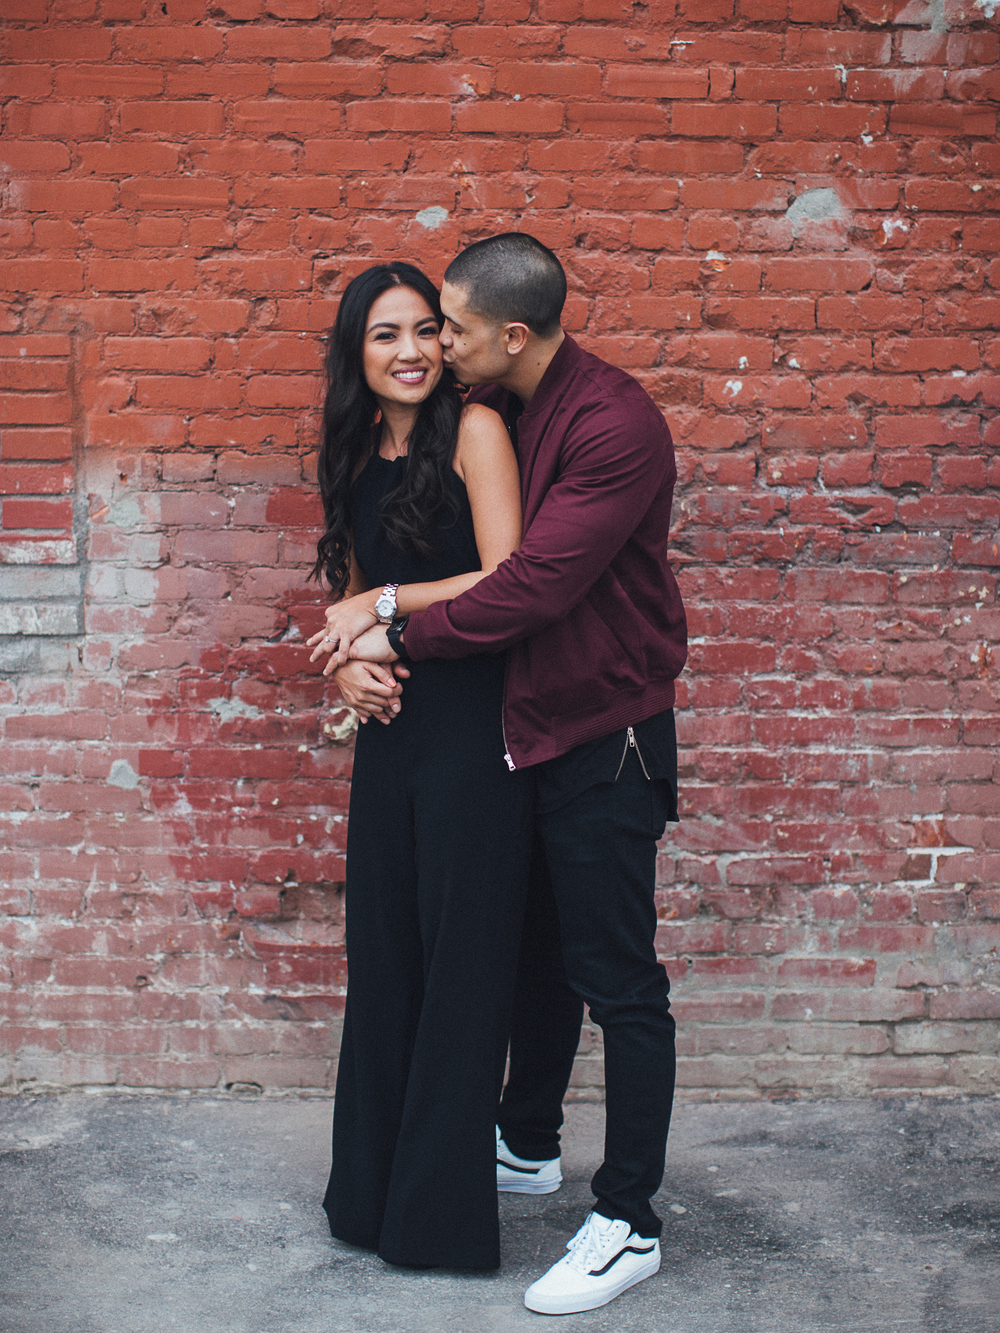 Ericka and Jeff Engagement_Brandon J Ferlin Photography-29.jpg